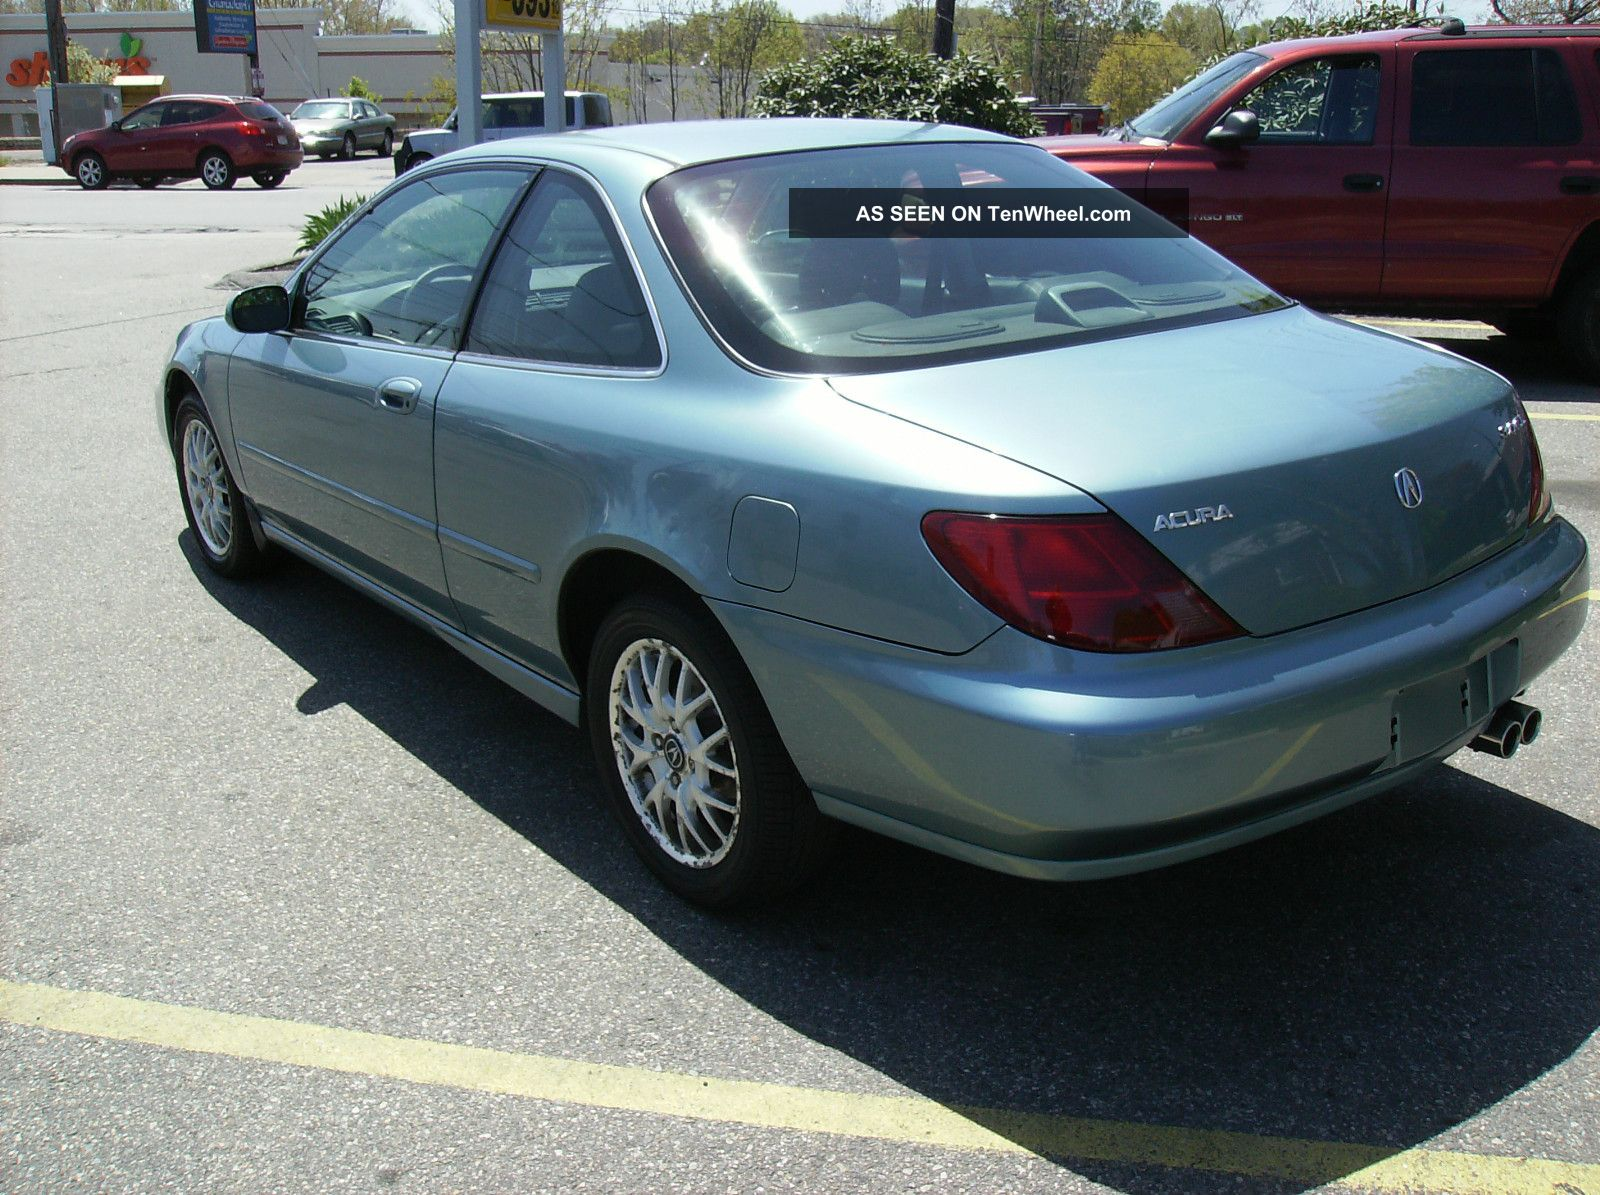 tl overview cl cars pic cargurus sedan dr acura